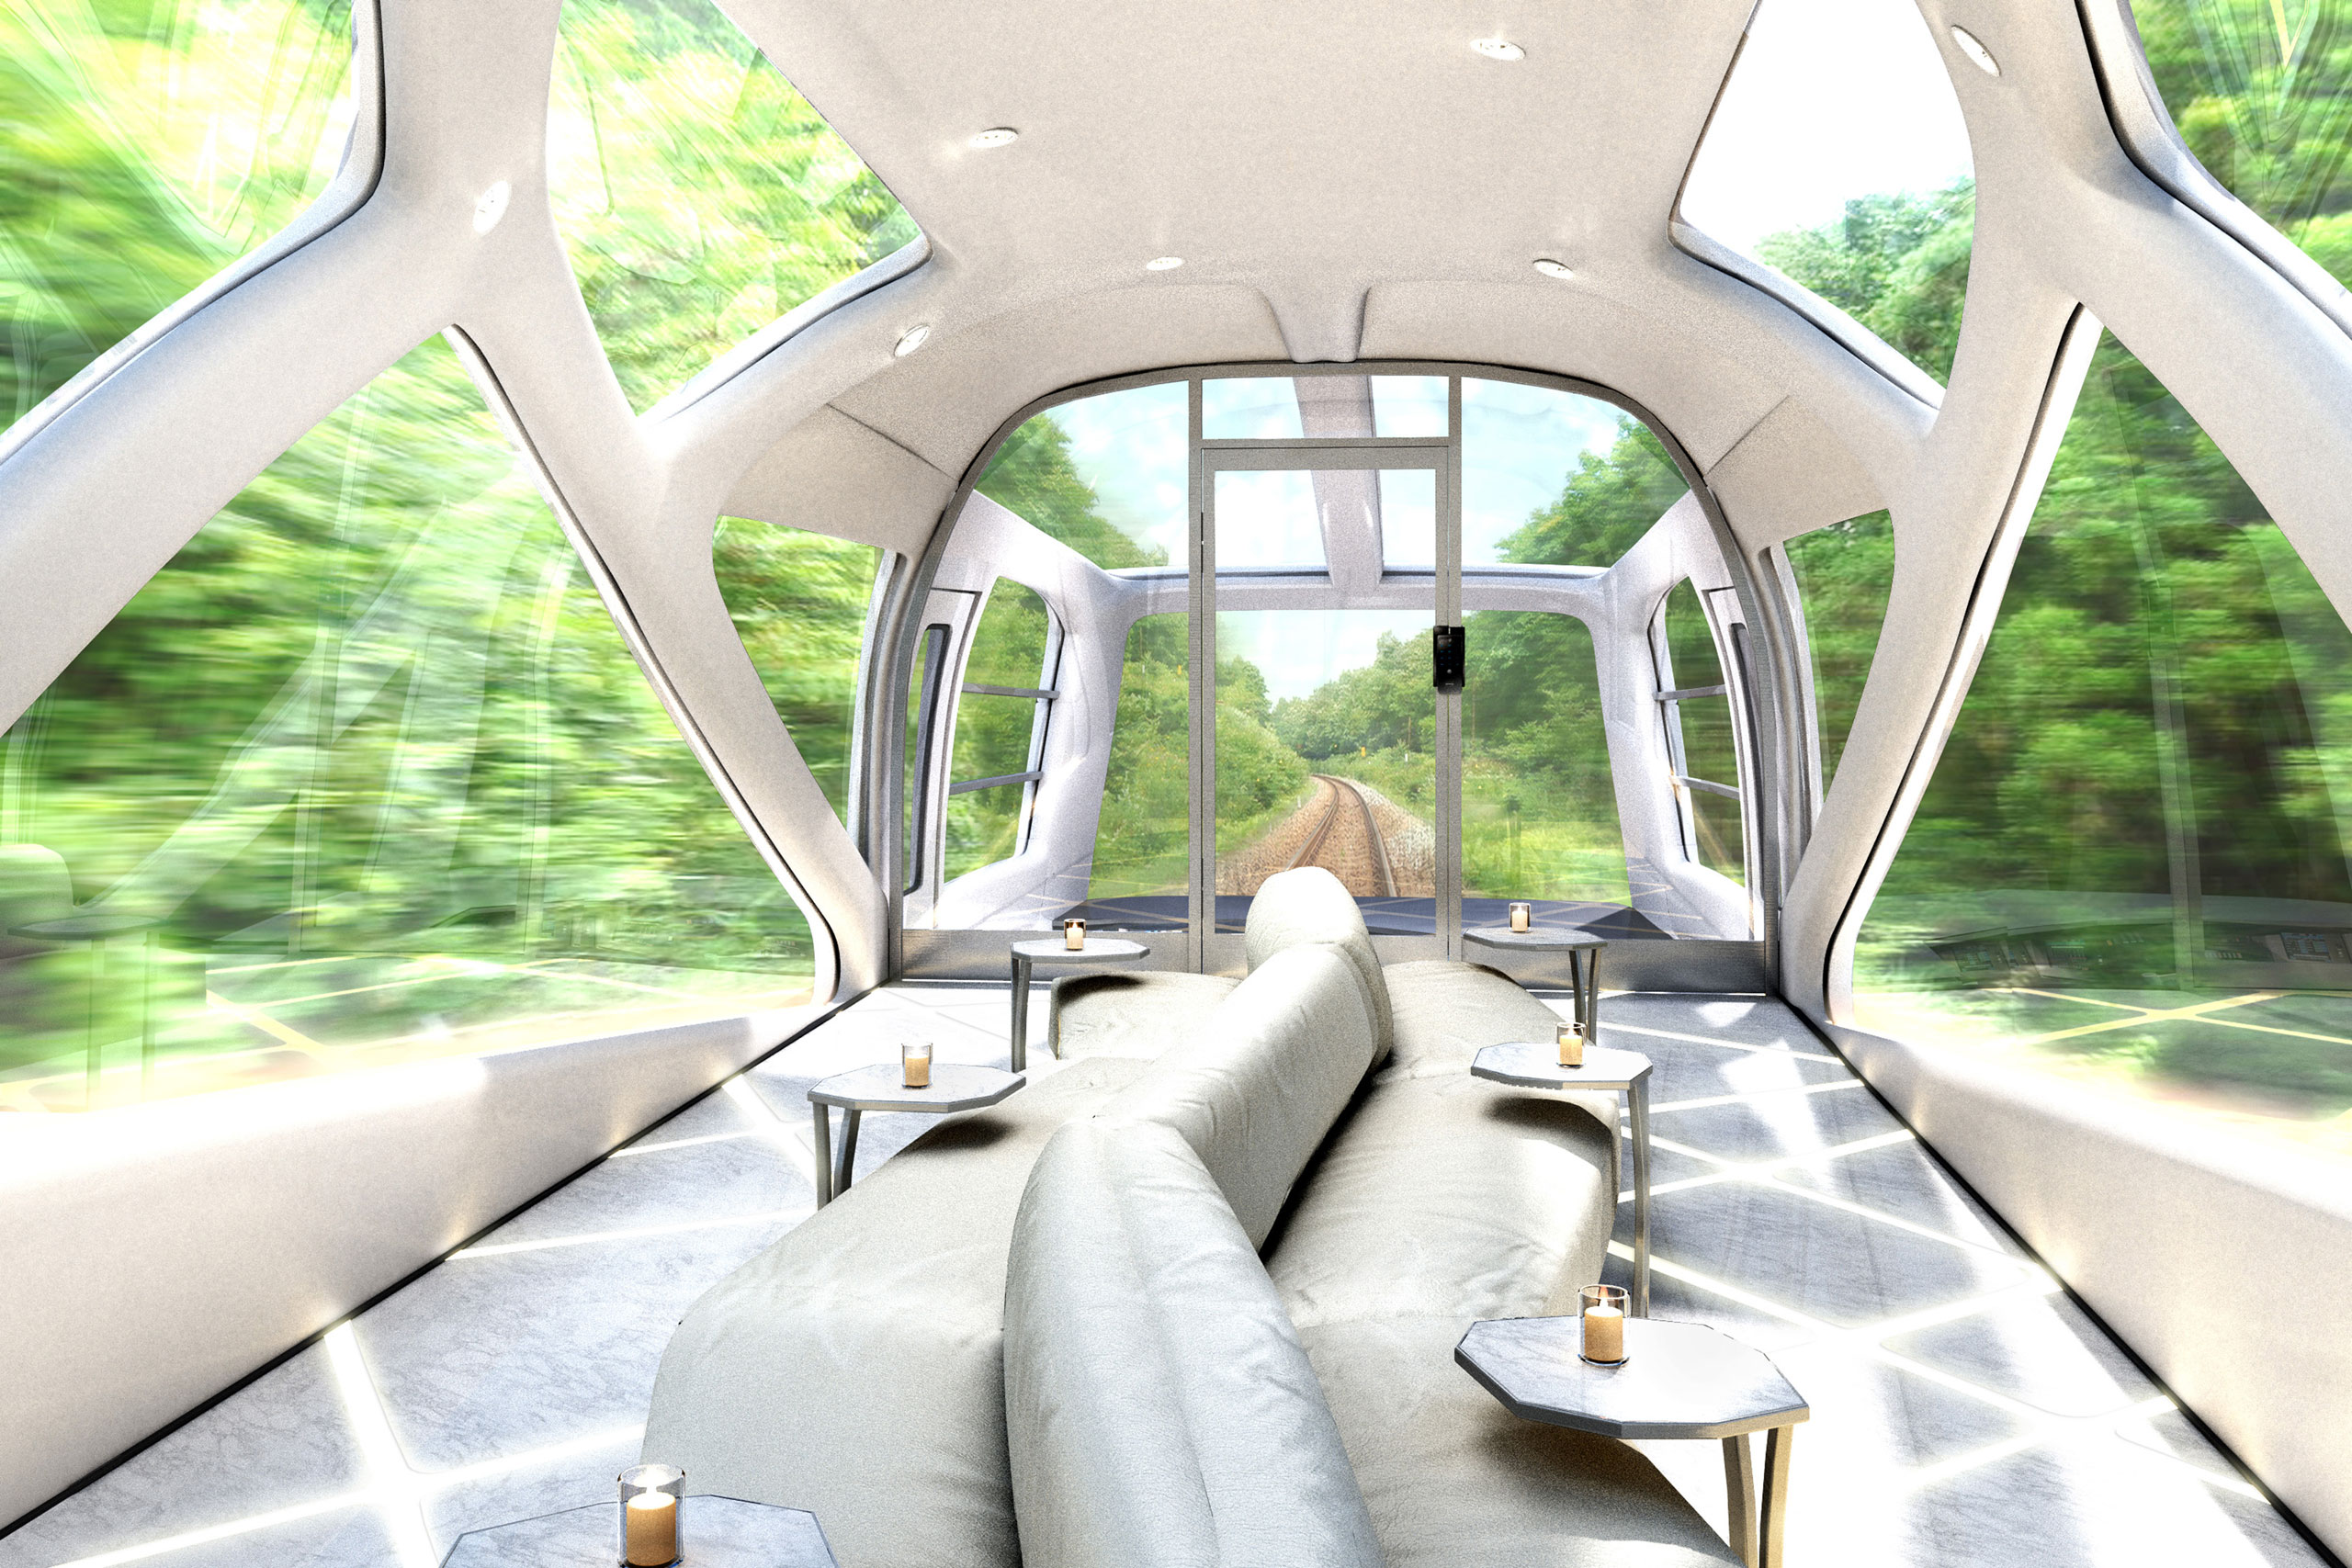 A rendering of East Japan Railway Company's design for the front lounge of a luxury train that's scheduled debut in Spring 2017. The train is being designed by Ferrari designer Ken Okuyama.